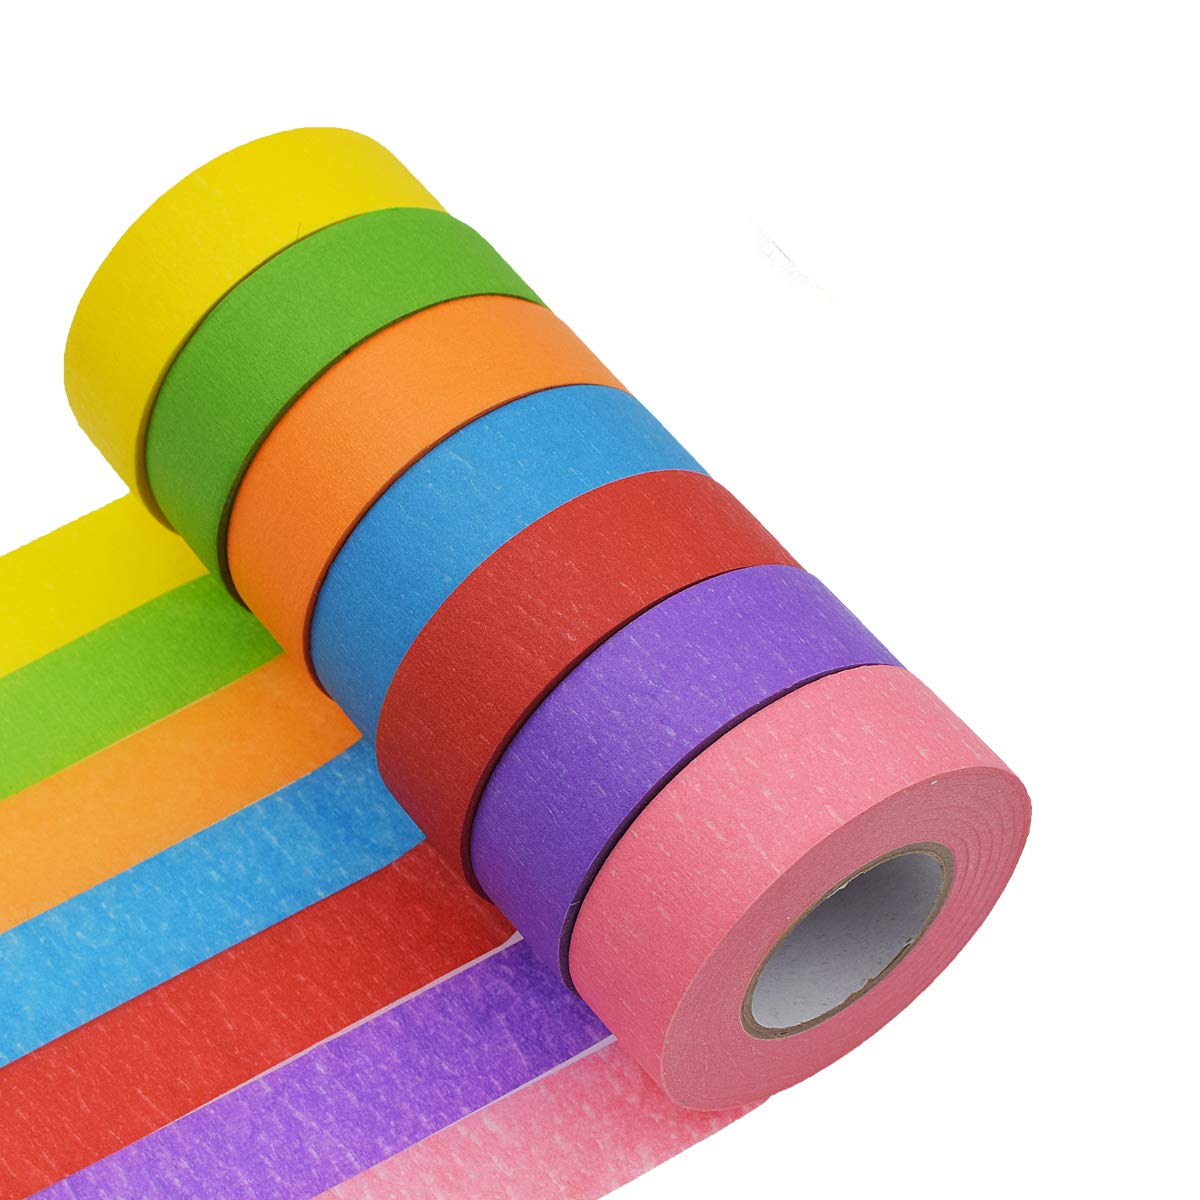 7 Pack 1 inch x 82 Feet Rolls Colored Masking Tape Rainbow Masking Tape Labelling Tape Graphic Art Tape Roll Aloddy